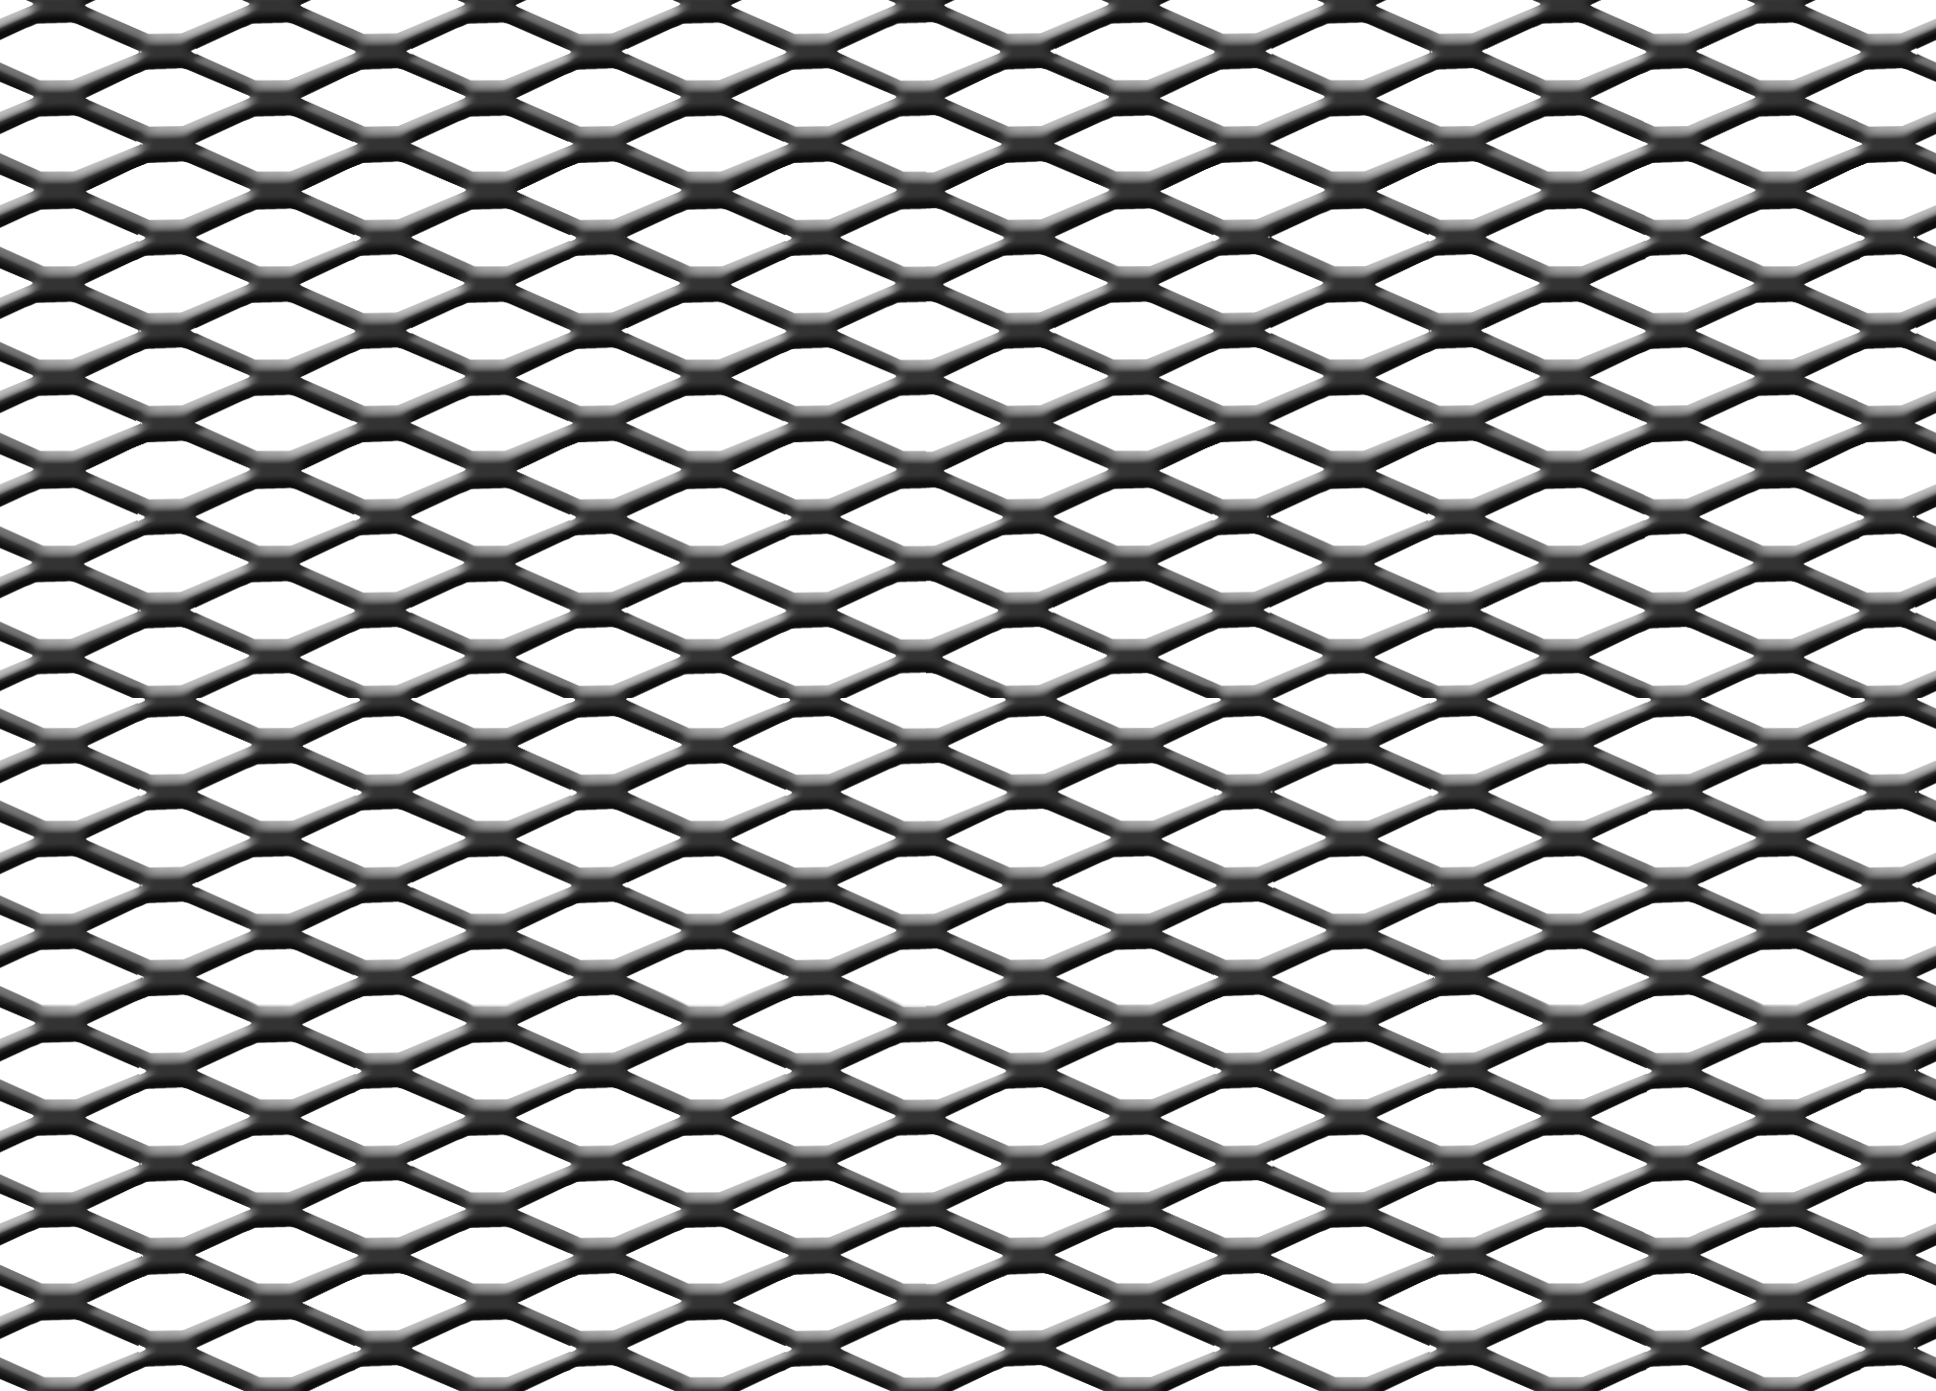 Grill texture png. Metal wallpapers definition full